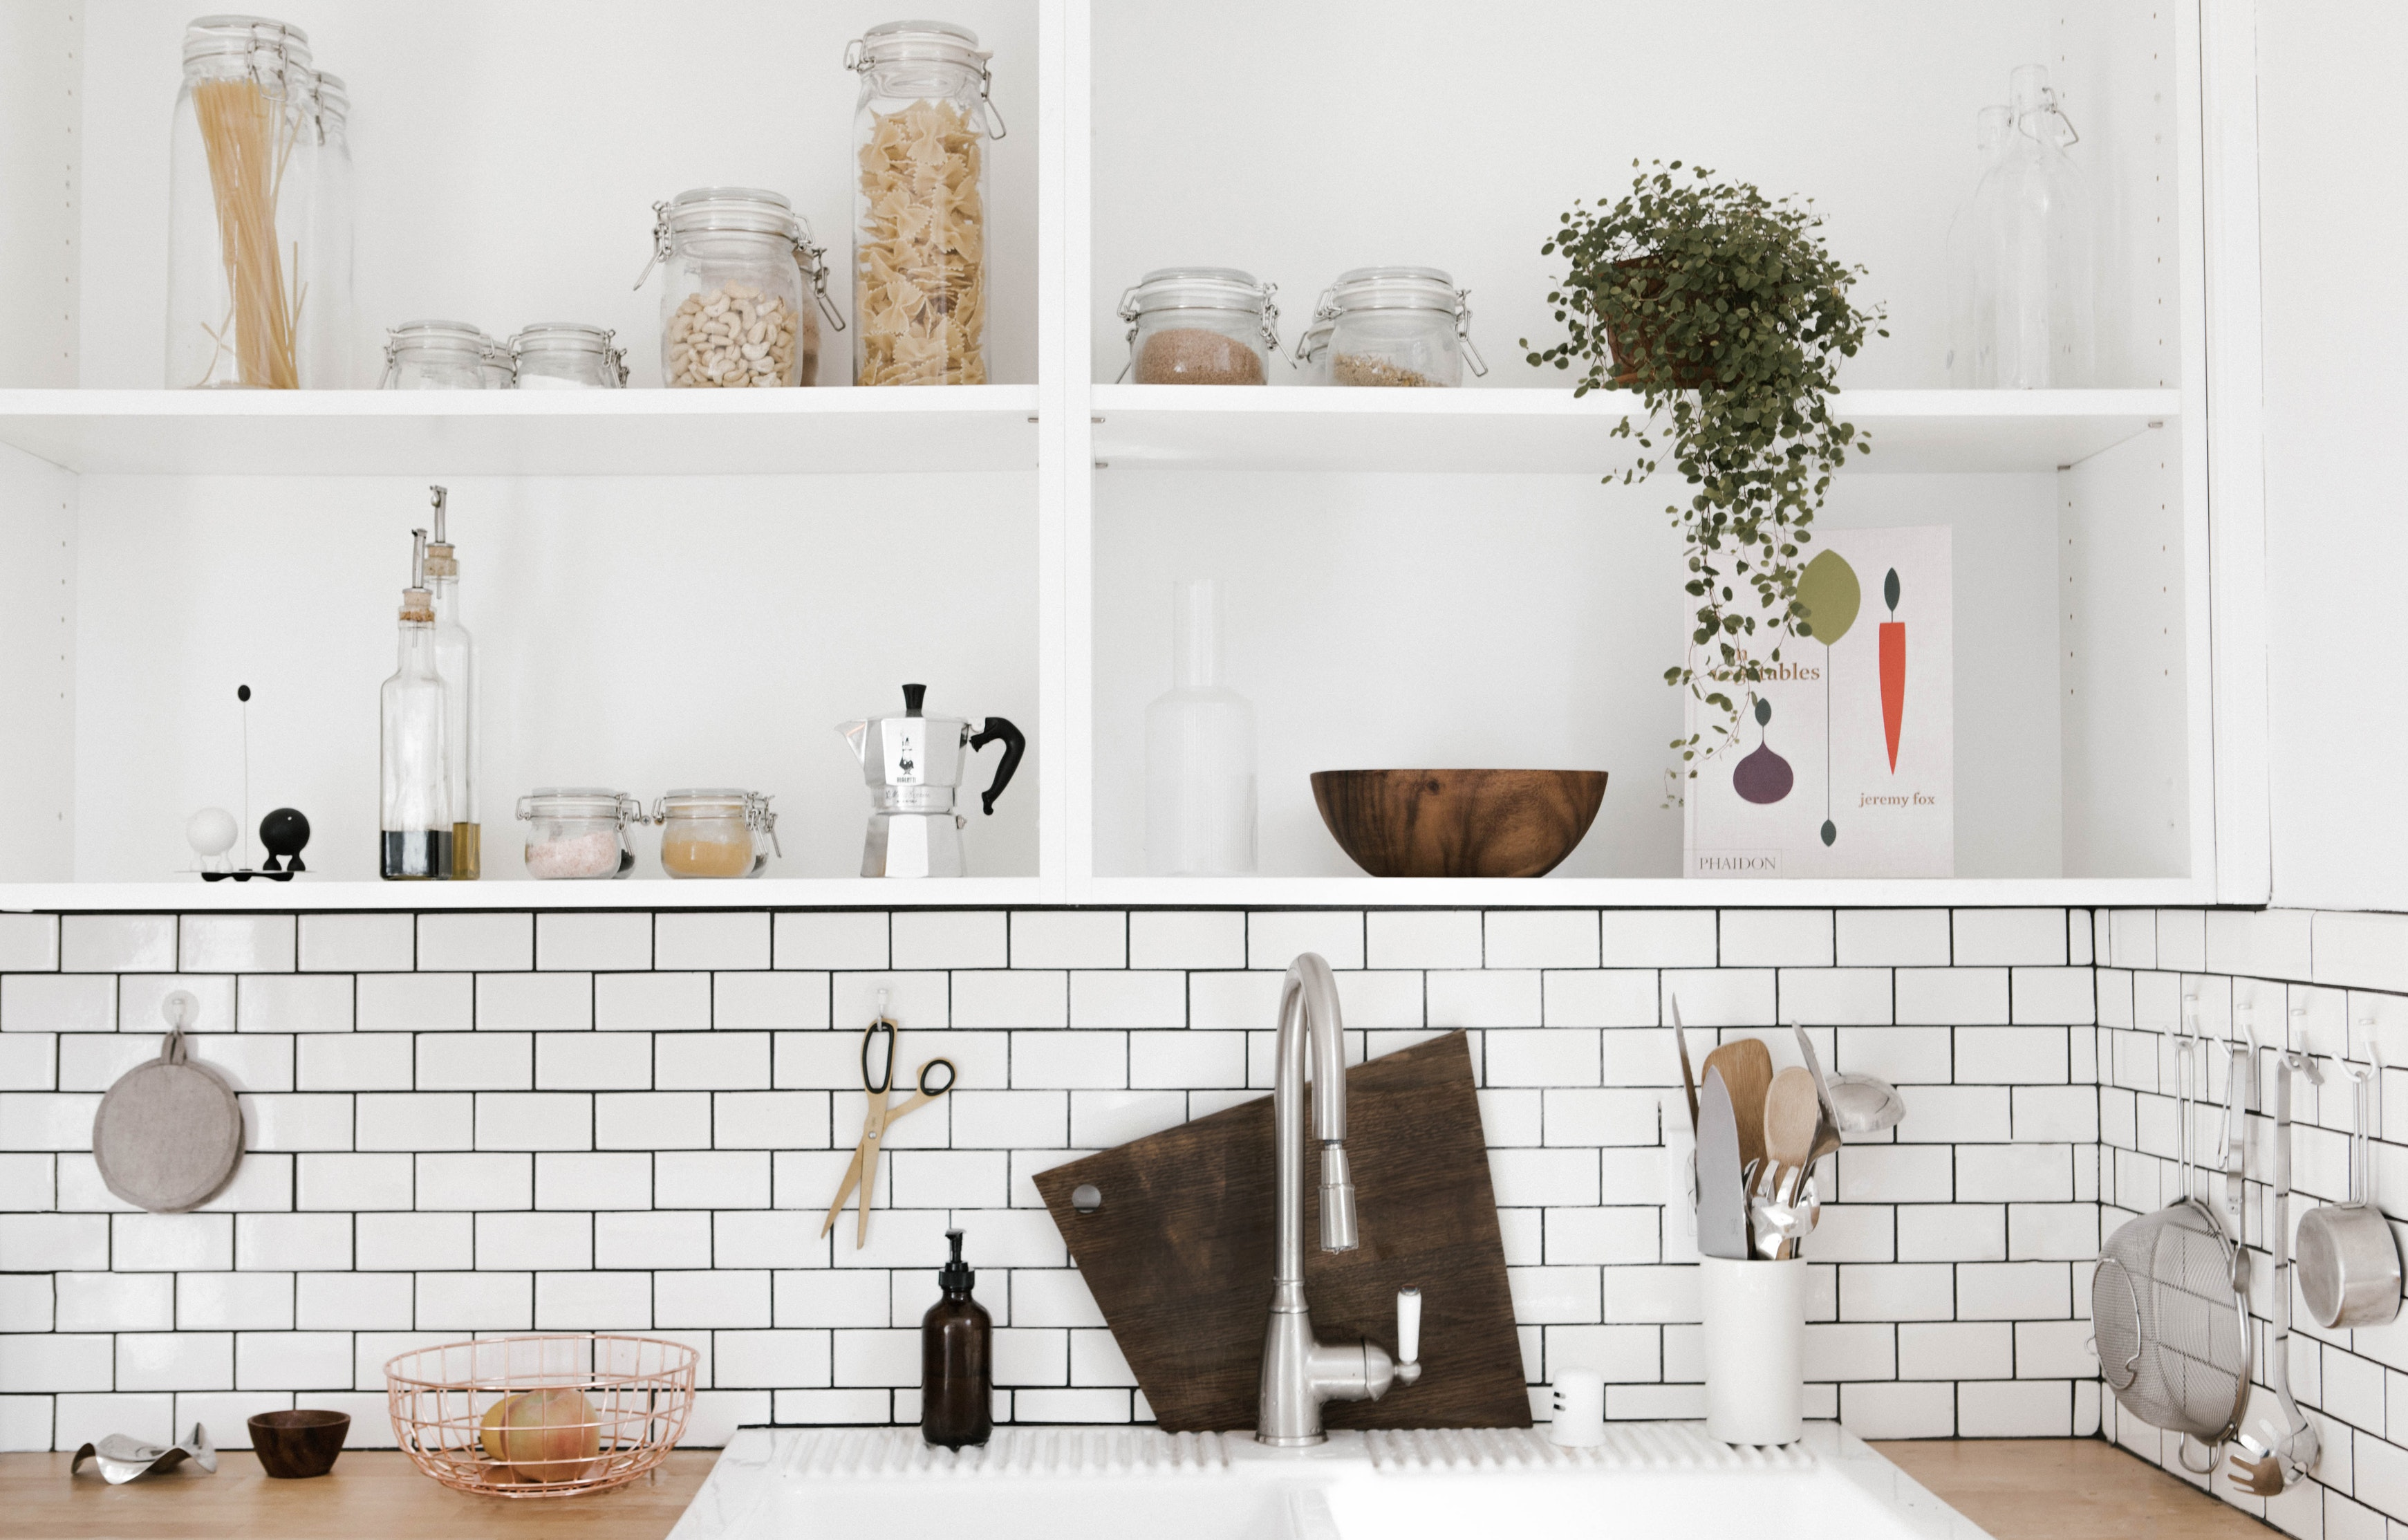 Mybuilder 5 types of tile and where to use them mybuilder tiles are a great solution for floor and wall coverings as theyre not only practical and hard wearing but stylish too however with so much choice on dailygadgetfo Gallery